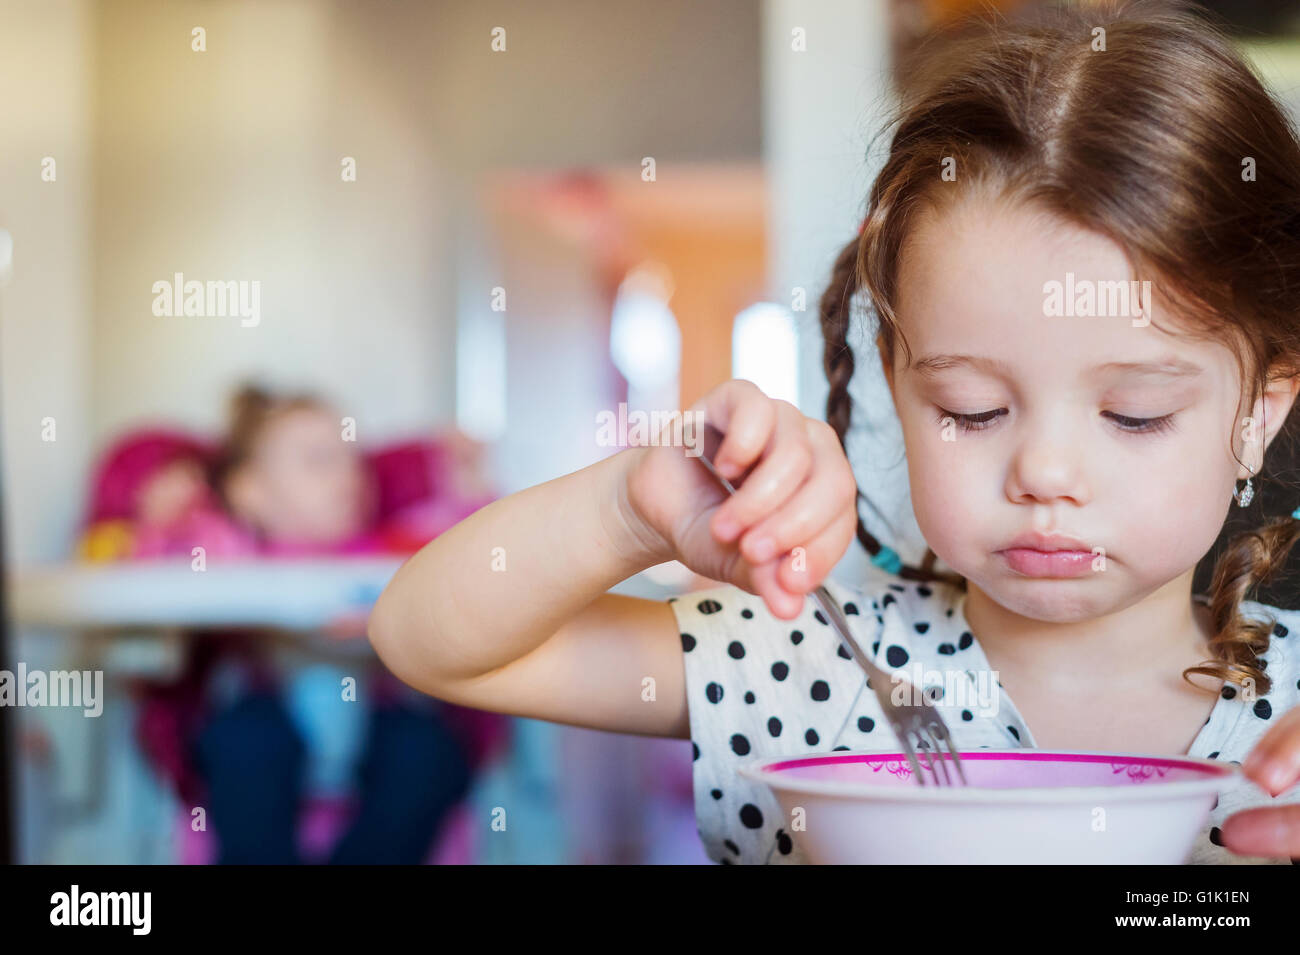 Little girl in the kitchen smiling, eating spaghetti - Stock Image